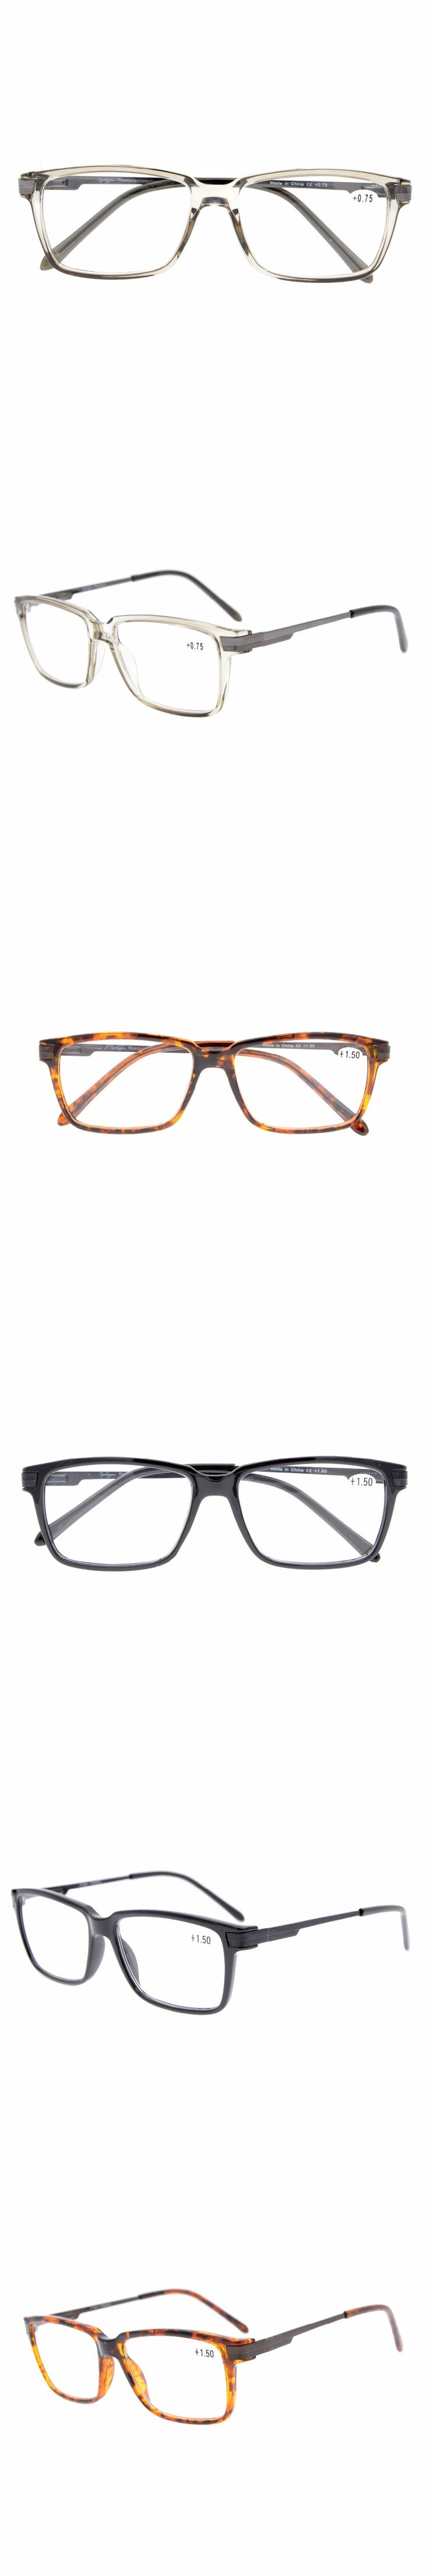 TR011 Eyekepper TR90 Frame Classic Spring Hinges Readers Stylish Crystal Clear Vision Reading Glasses +0.50---+3.00